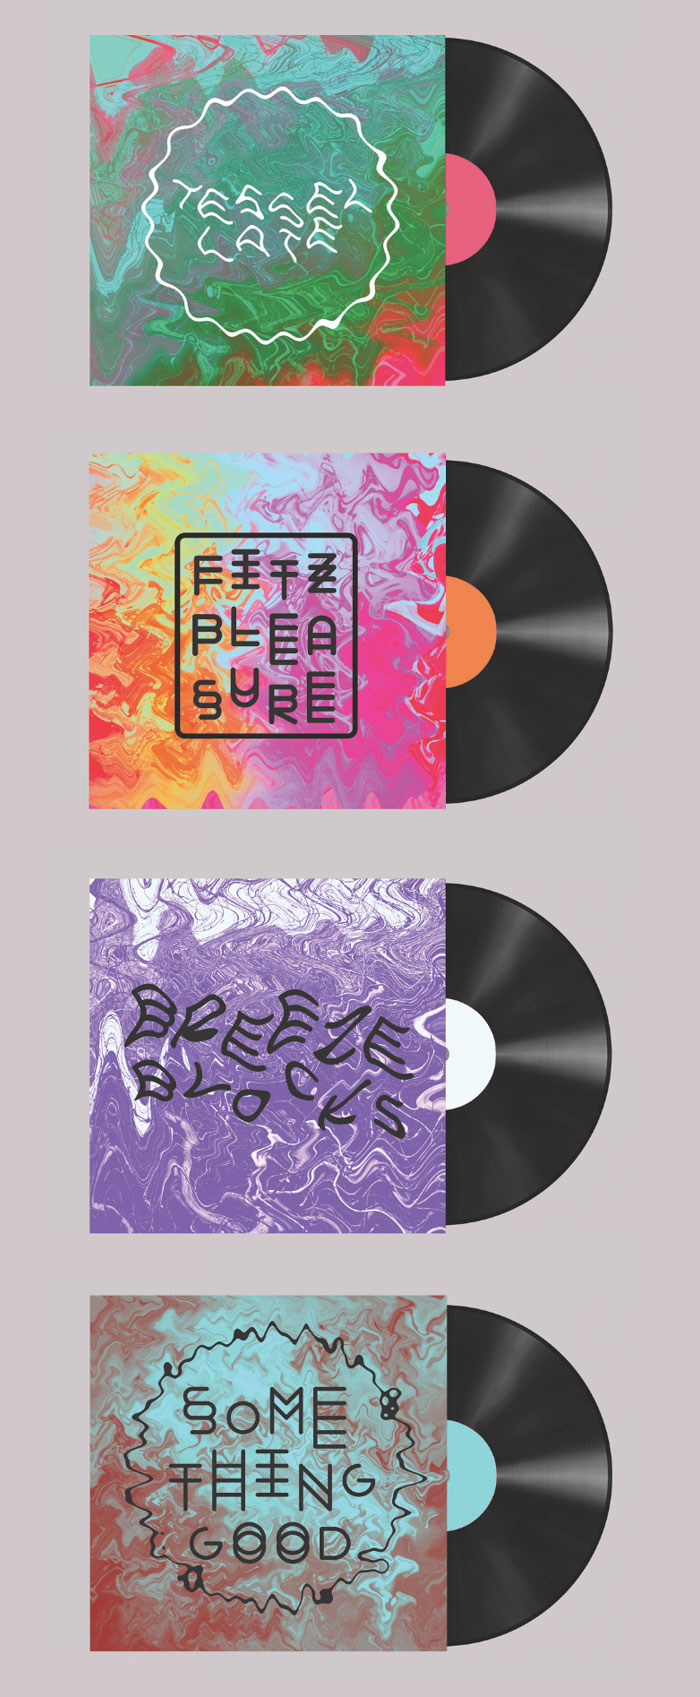 Eve Warren / Record sleeve design concepts - Alt-J